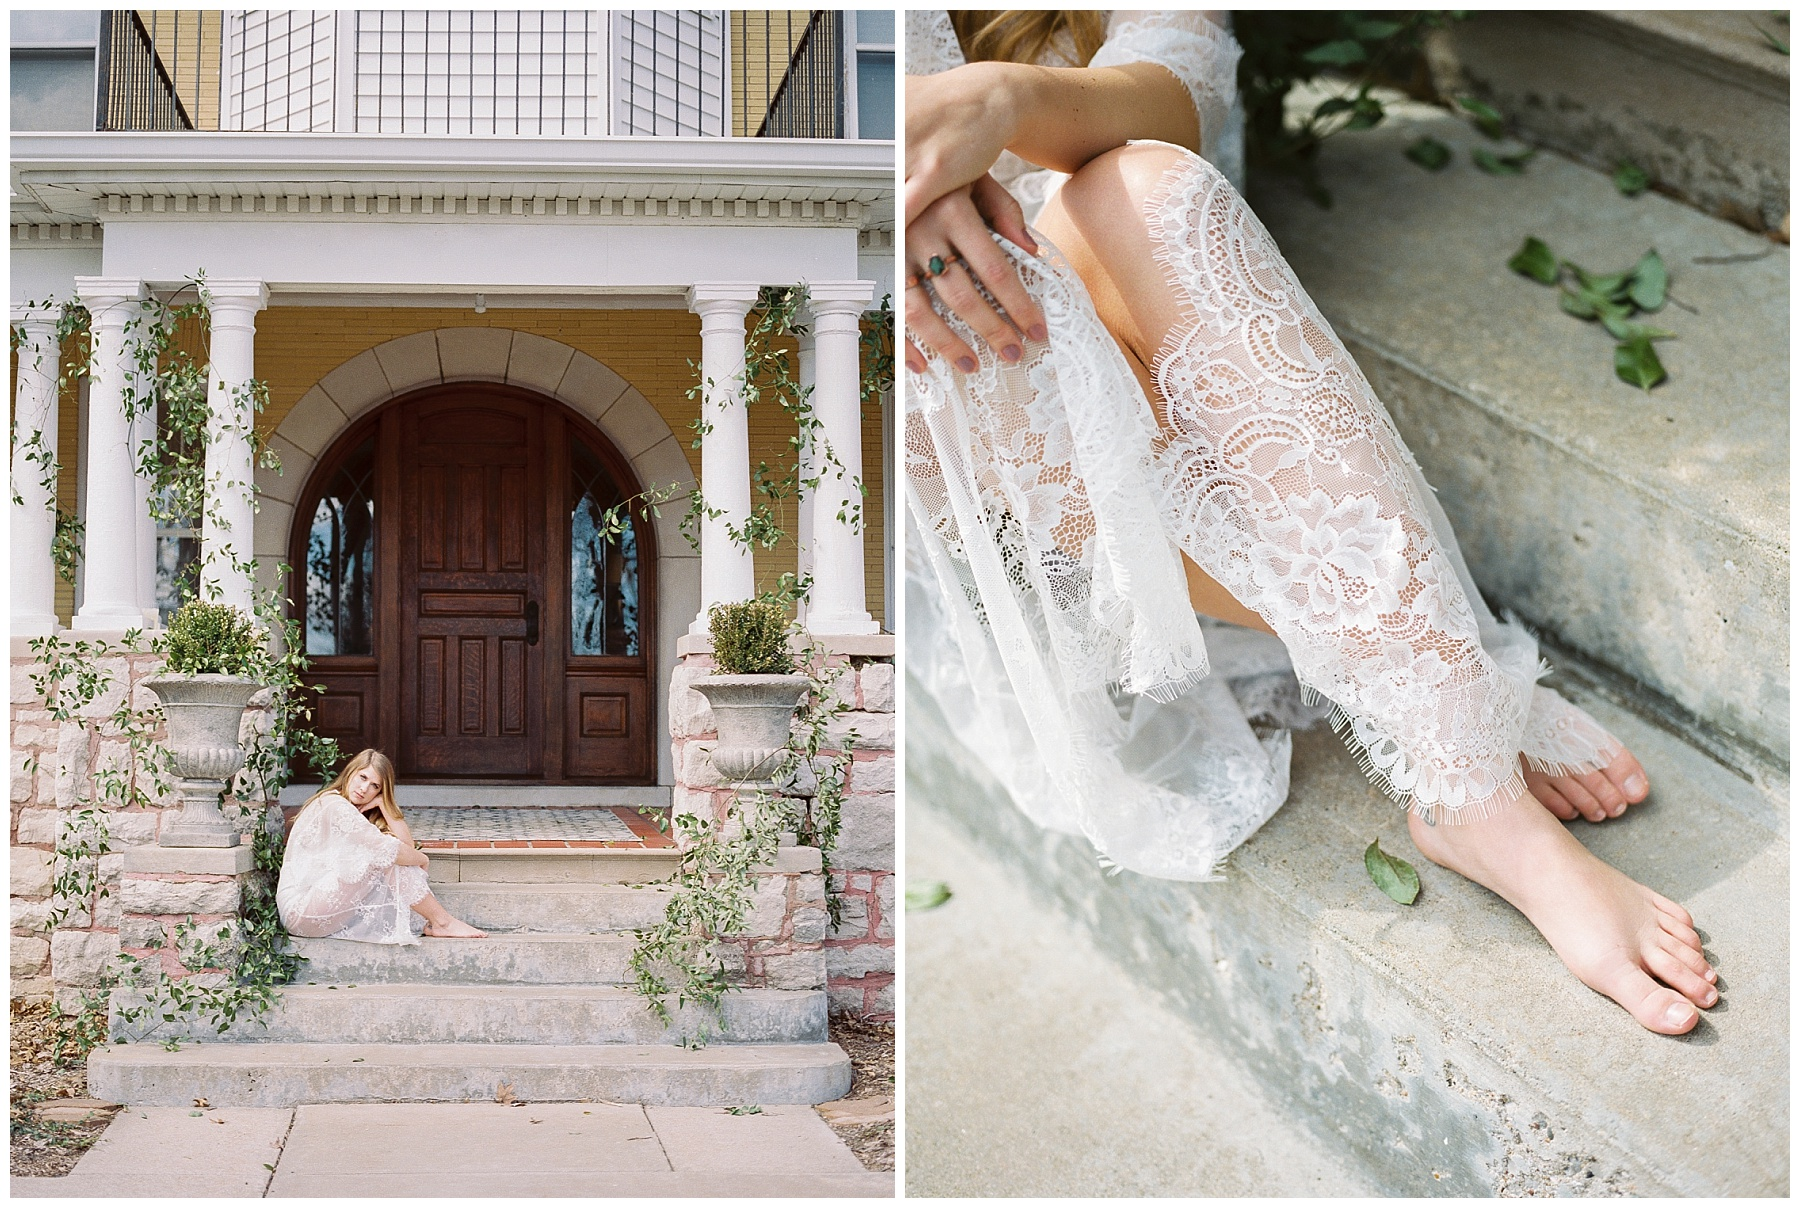 Natural, Intimate, and Organic Bridal Session on Steps of Century Old Bed and Breakfast by Kelsi Kliethermes Photography Best Missouri and Maui Wedding Photographer_0004.jpg